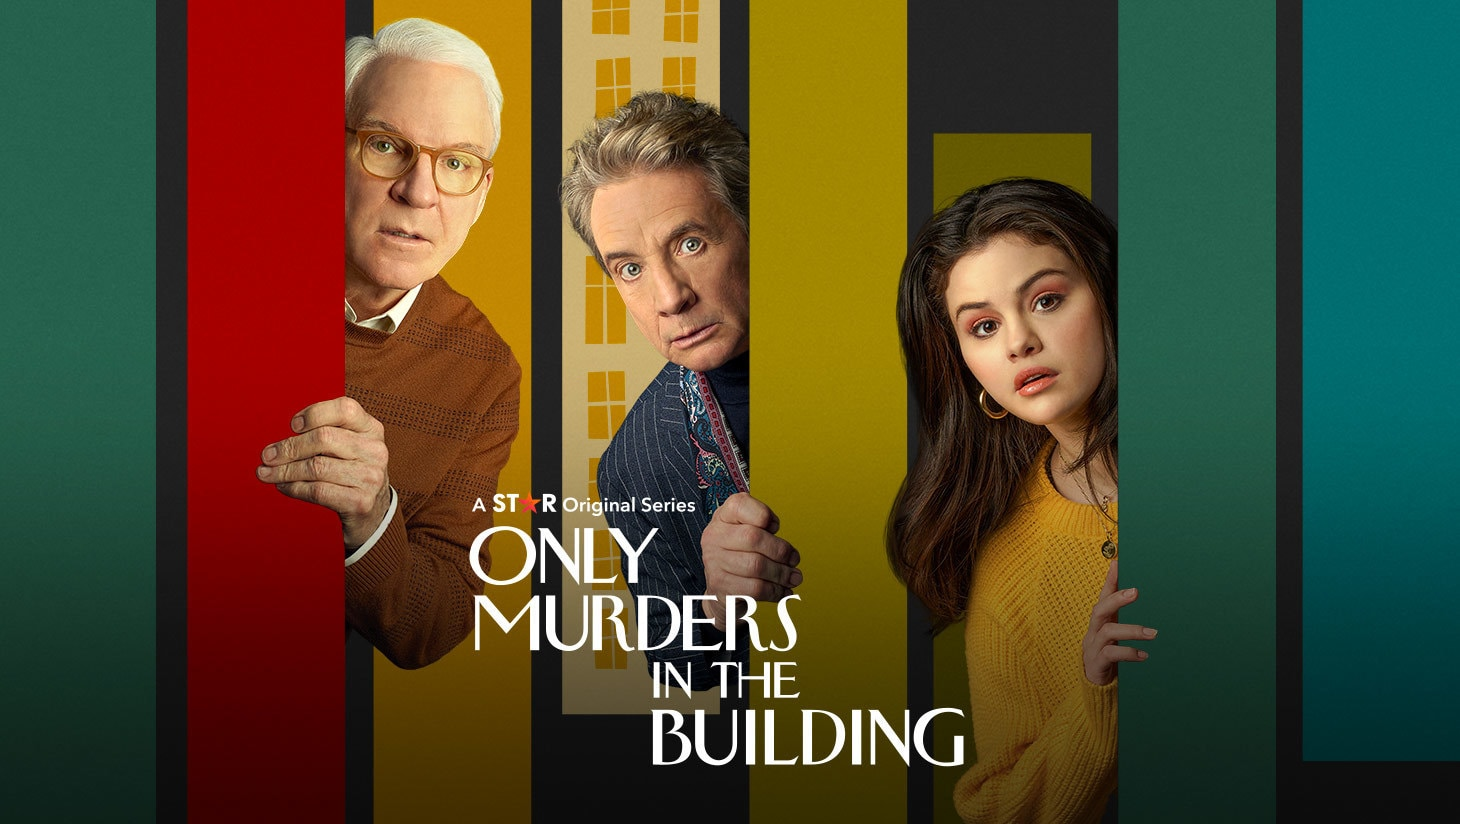 Steve Martin, Martin Short and Selena Gomez in the Only Murders in the Building artwork